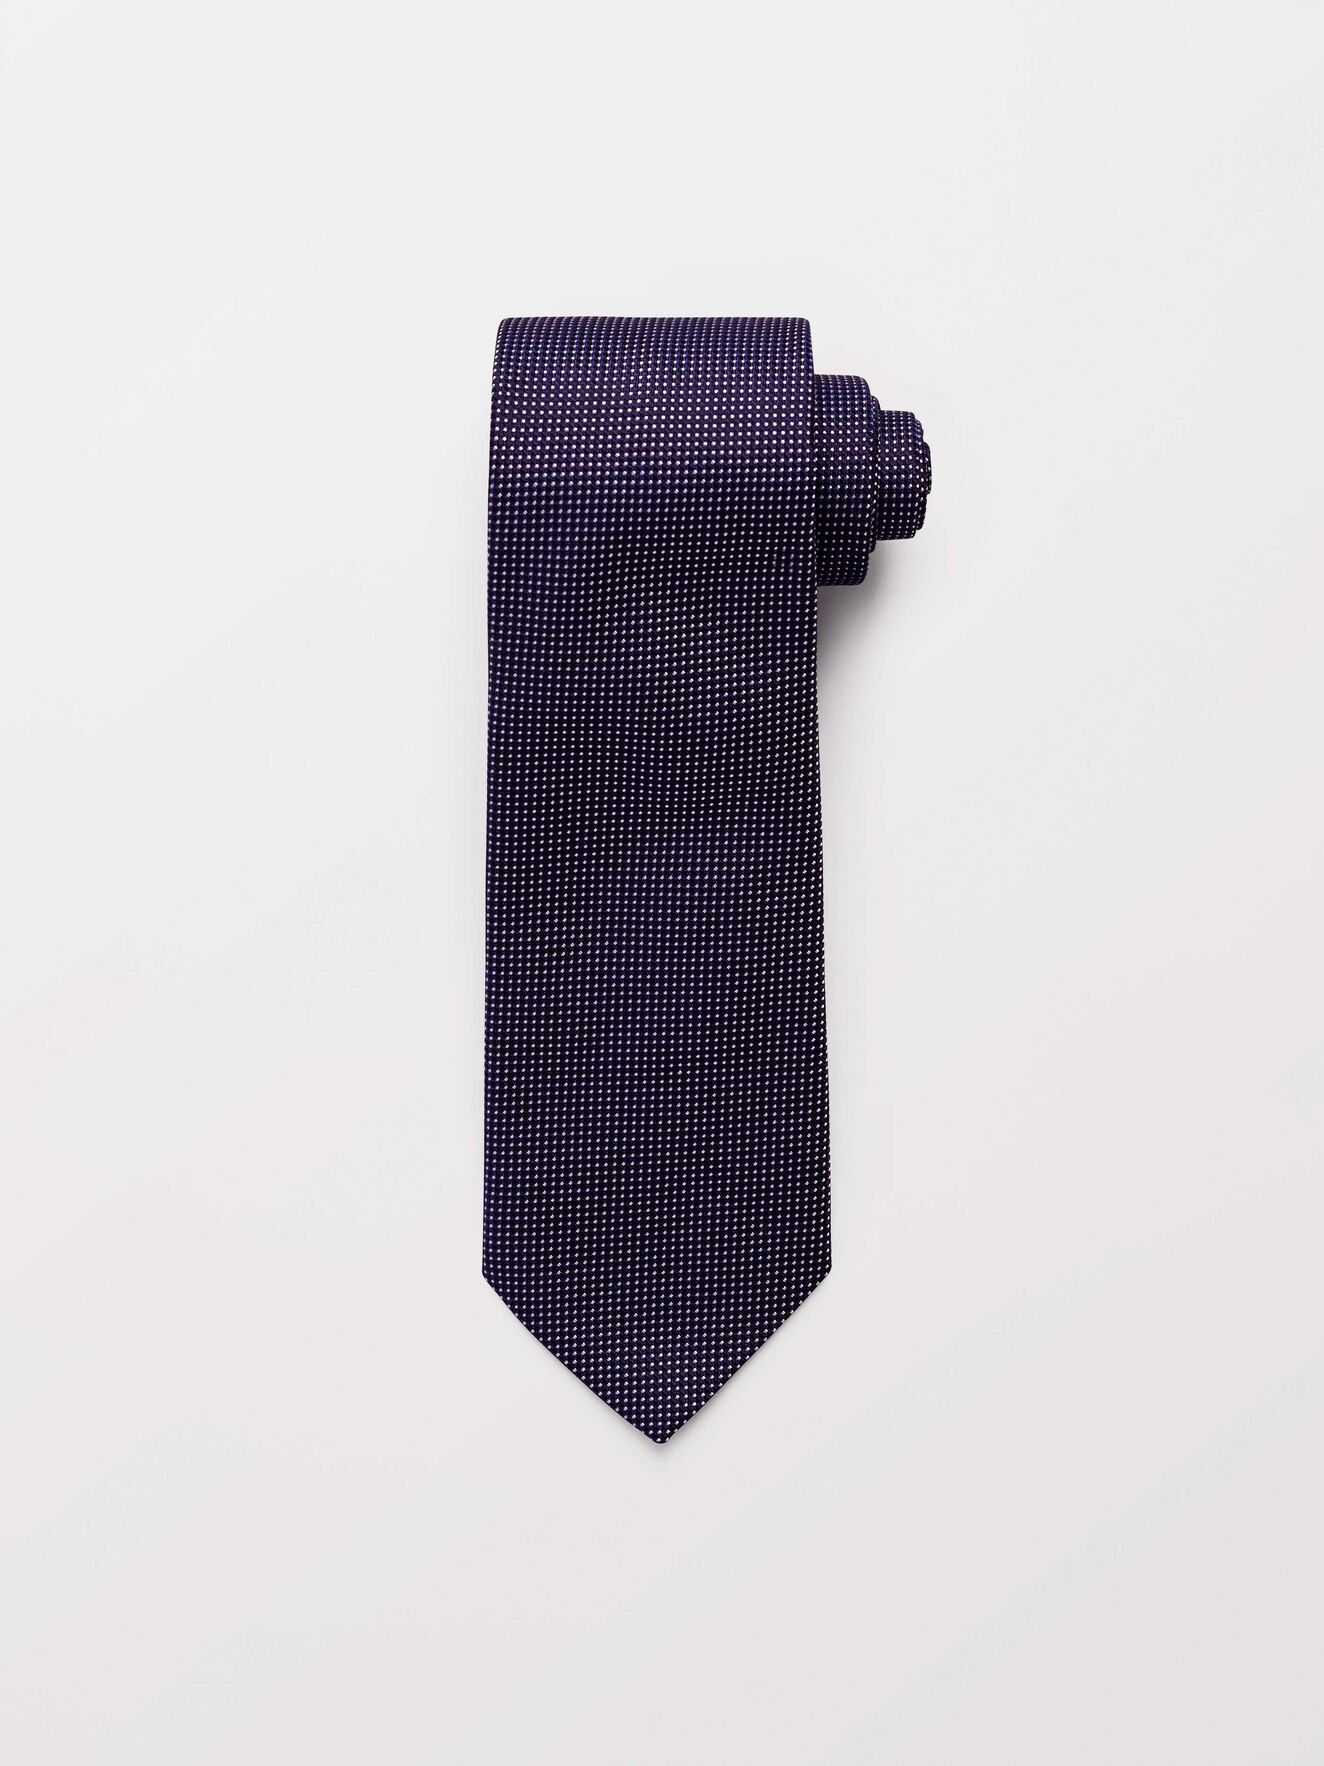 Tottis Tie in Deep Purple from Tiger of Sweden